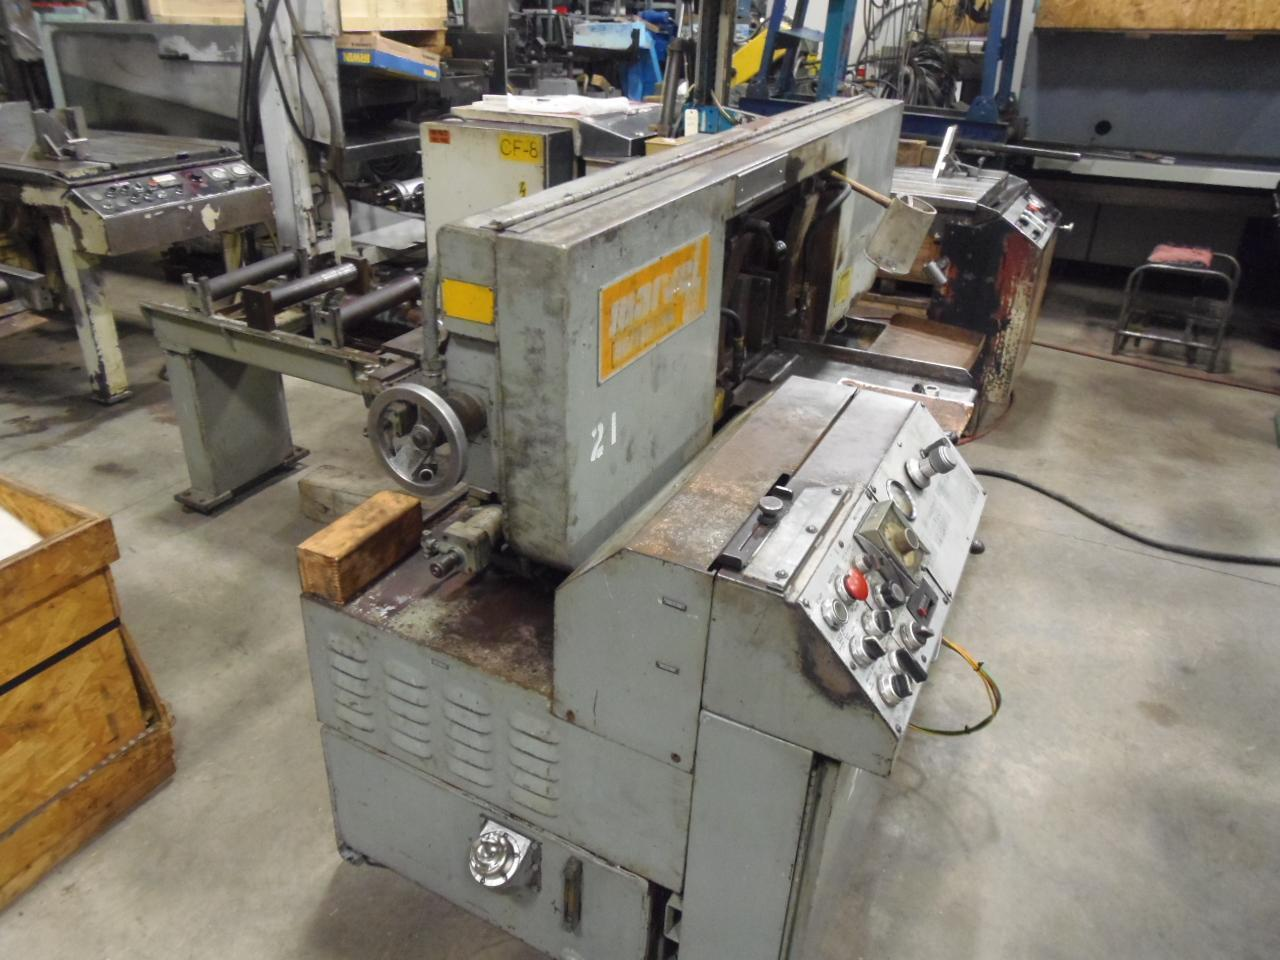 "13"" MARVEL SERIES 13A HORIZONTAL BANDSAW, ROLLER TABLE, 1981"